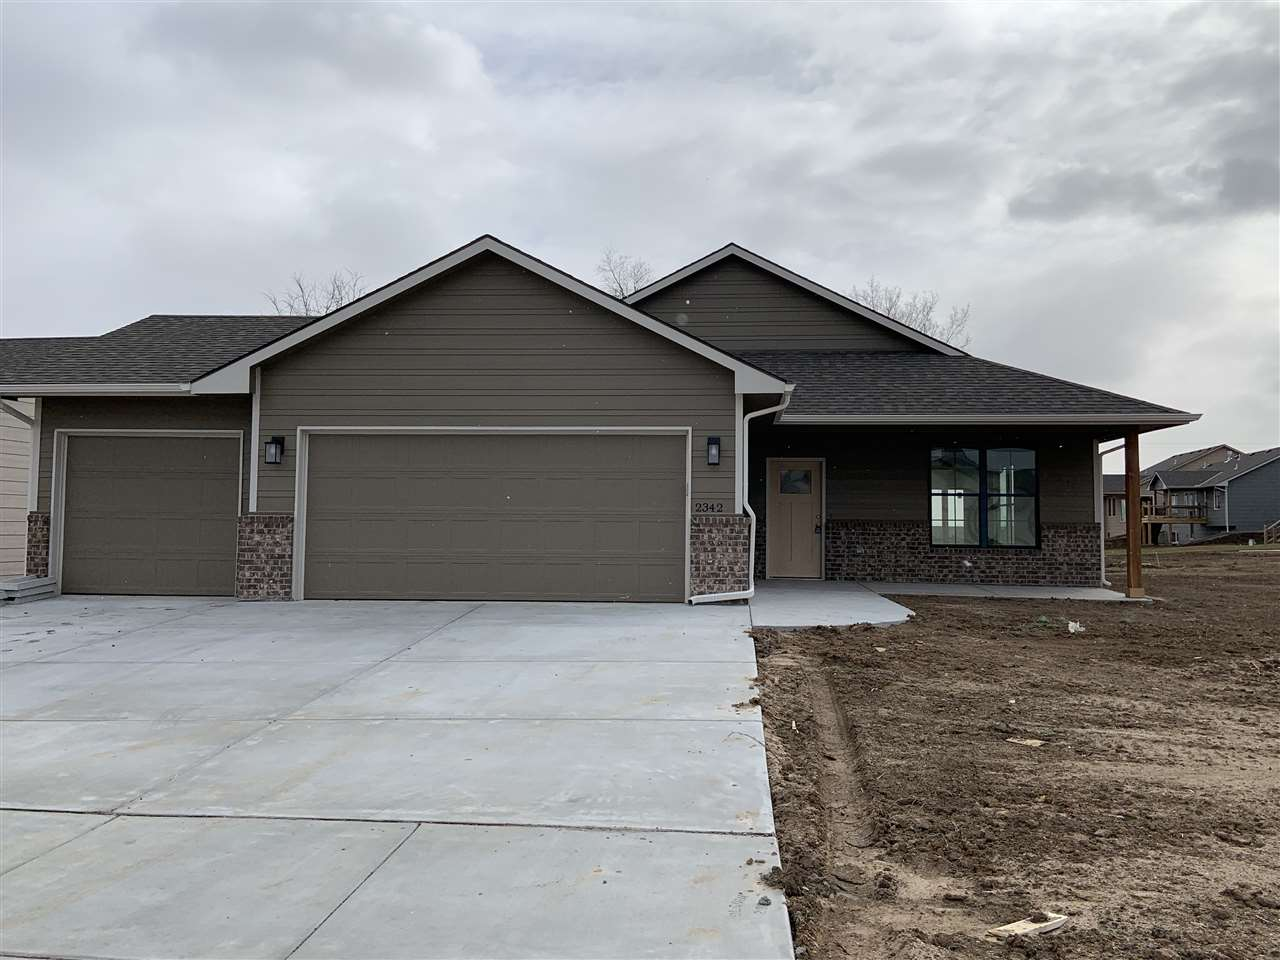 Come see this no step entry, patio home in the development, Cedar Creek. The home features 3 bedroom